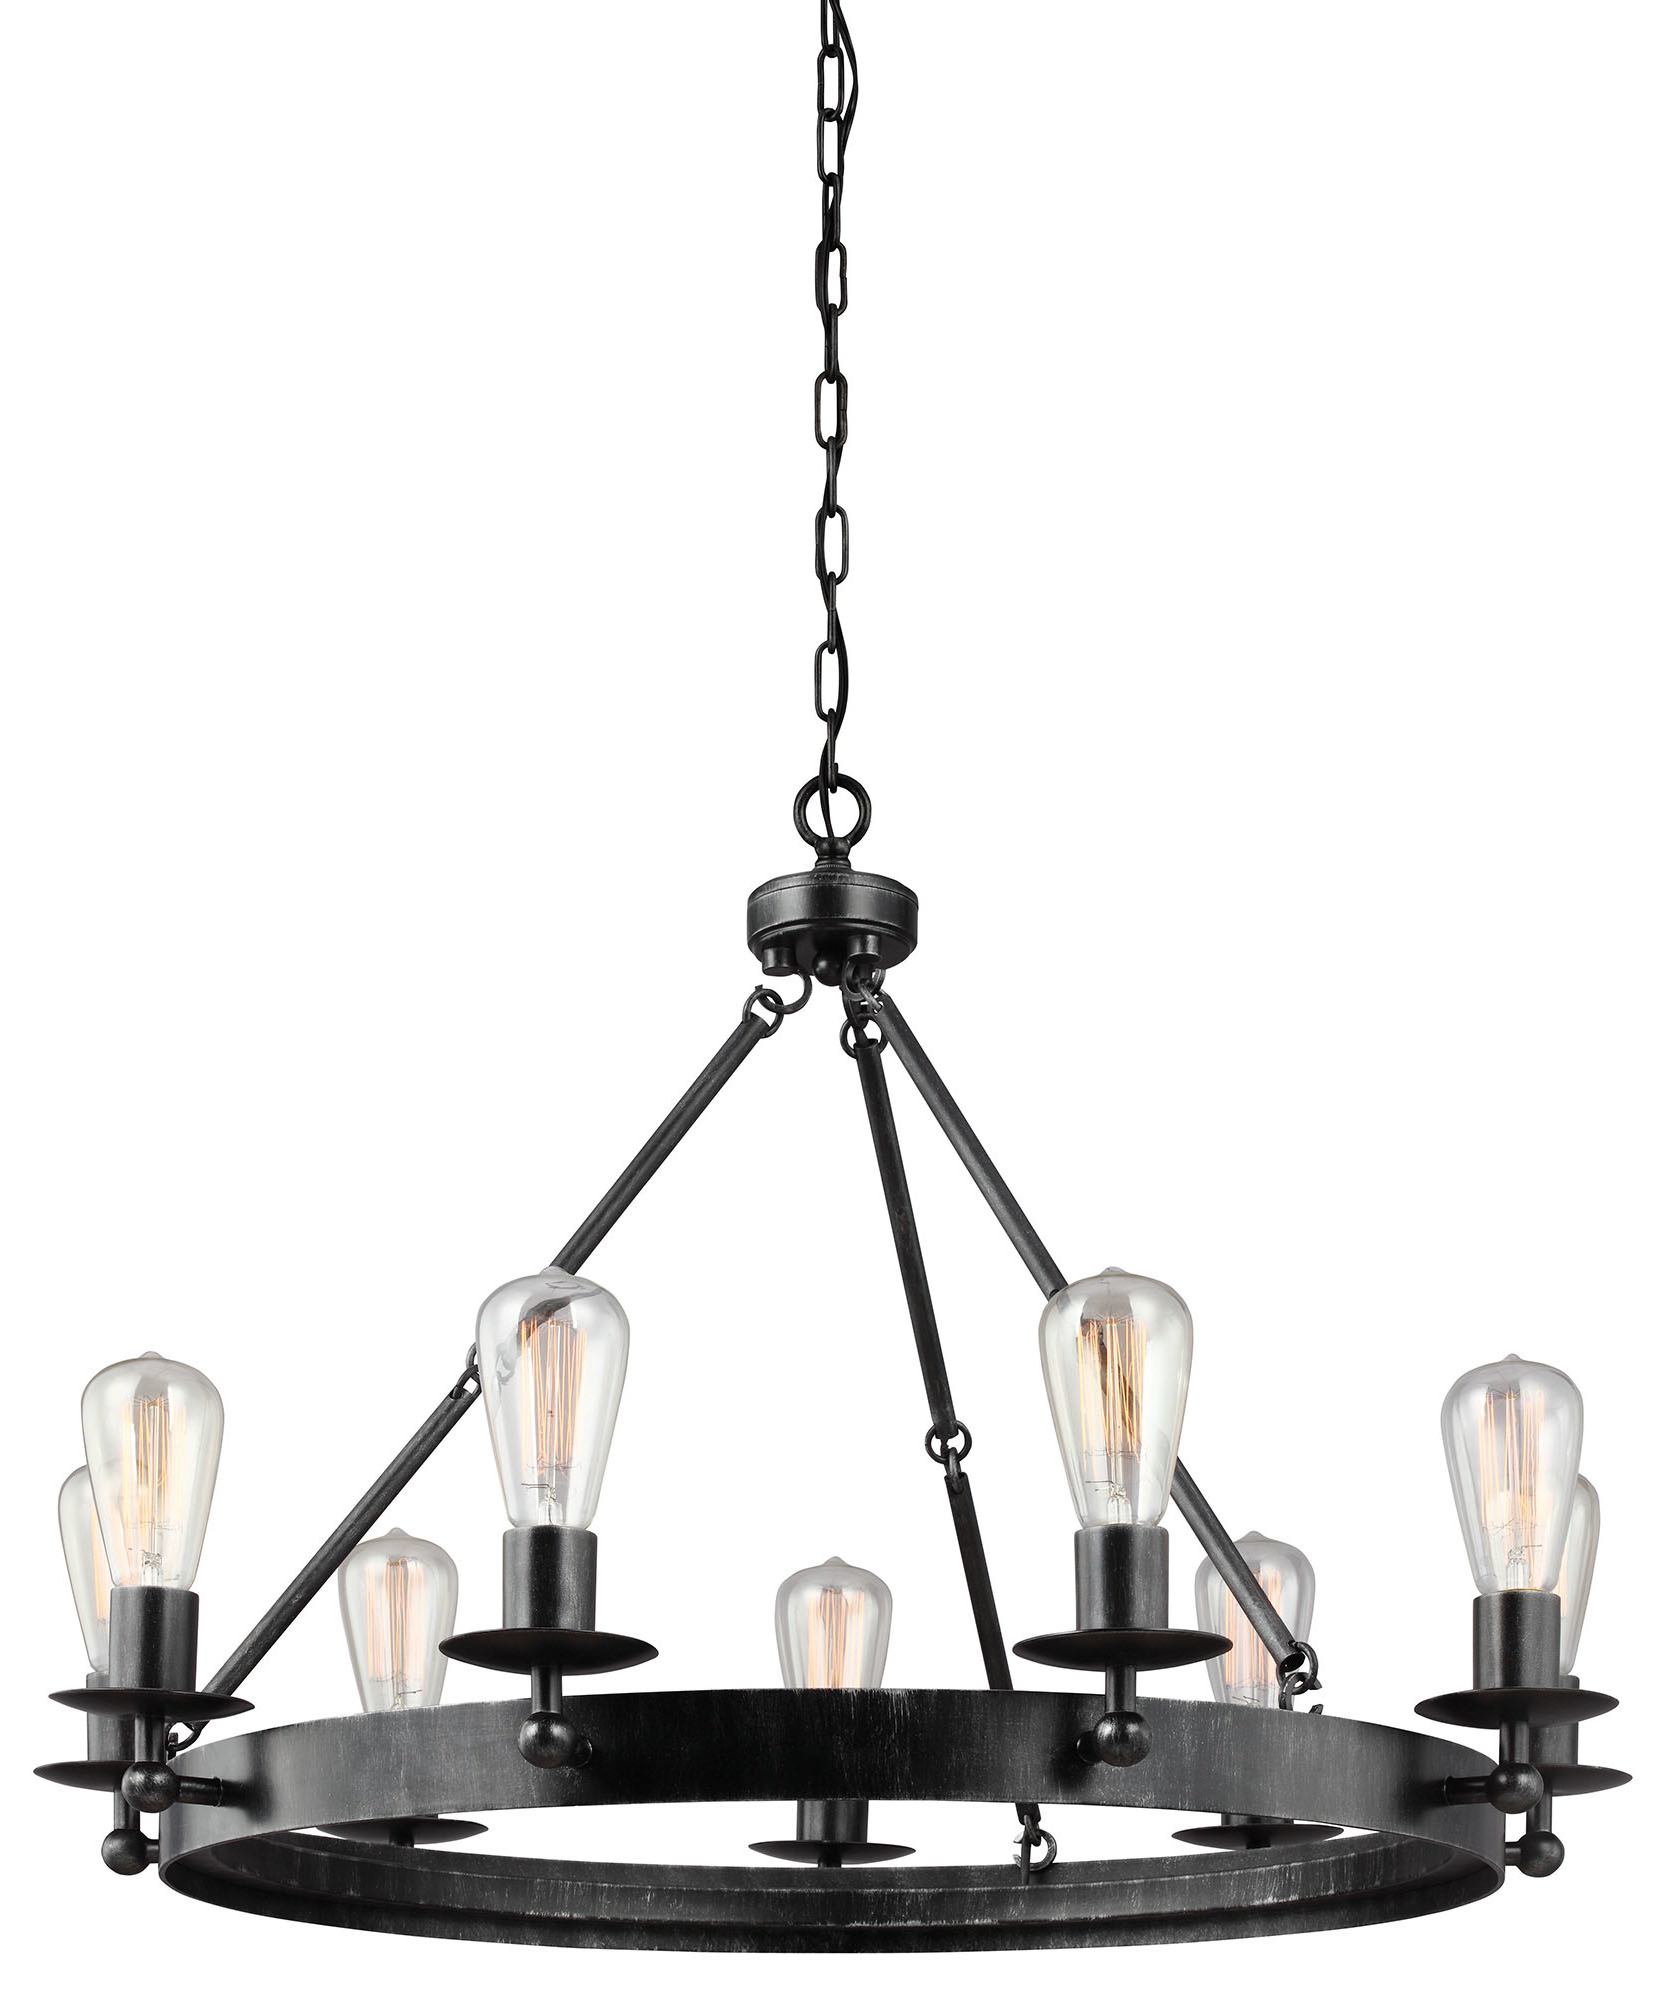 Birch Lane Pertaining To Widely Used Alayna 4 Light Shaded Chandeliers (View 8 of 20)